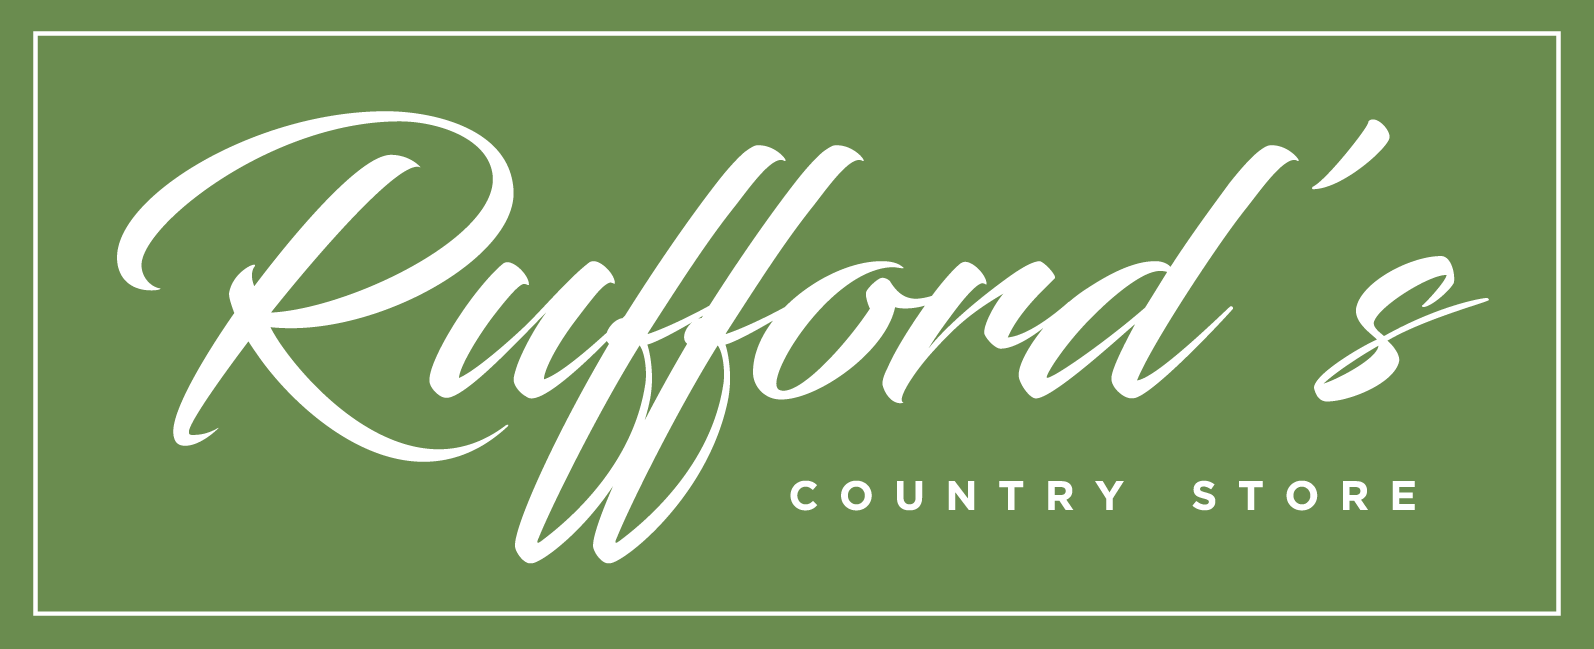 Ruffords Country Store